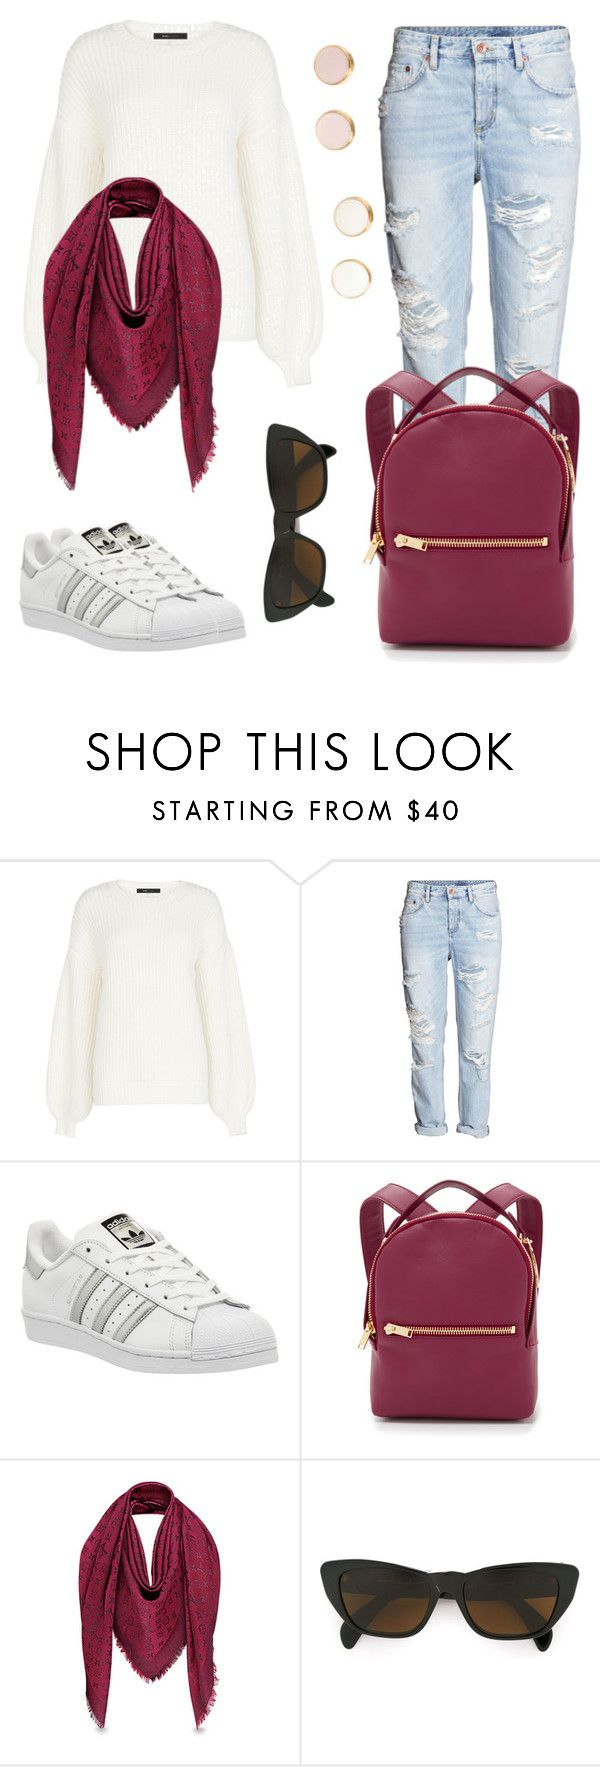 """2day"" by helena-italian-fashion ❤ liked on Polyvore featuring BCBGMAXAZRIA, H&M, adidas, Sophie Hulme, Moschino, men's fashion and menswear"